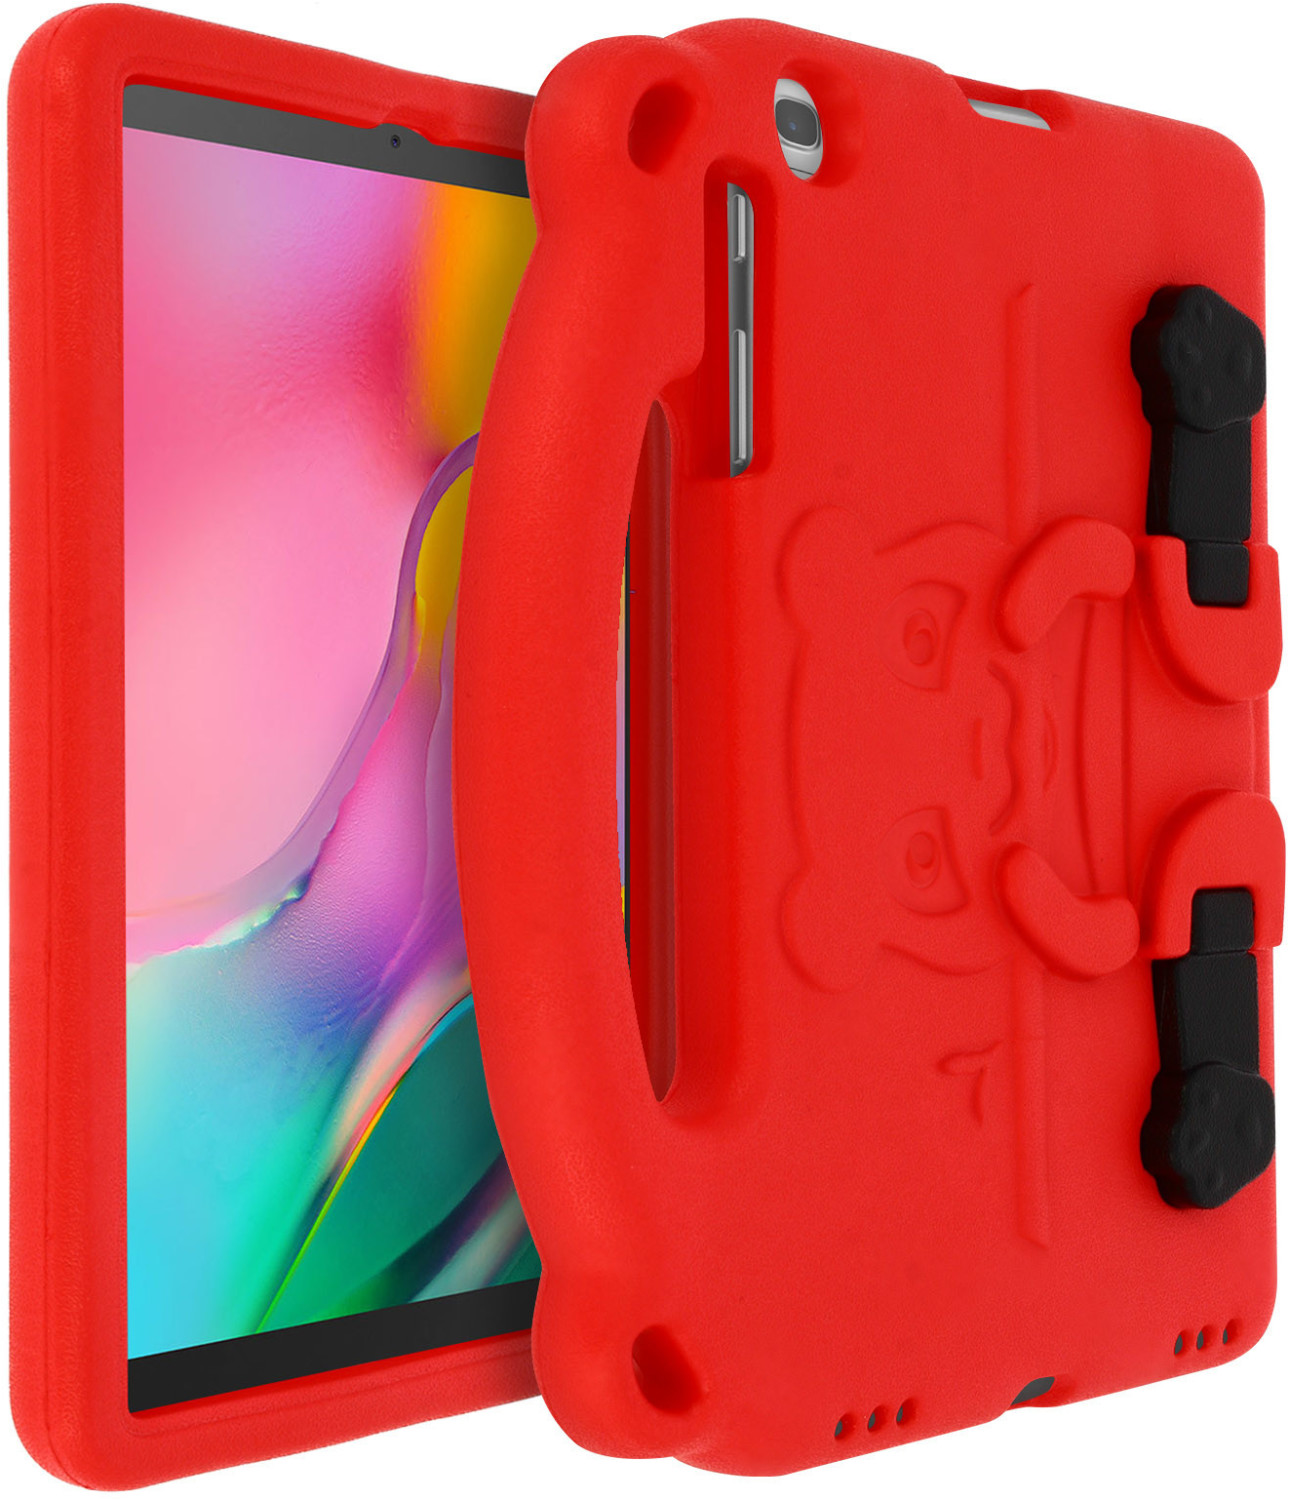 Image of Avizar Case Panda Galaxy Tab A 10.1 2019